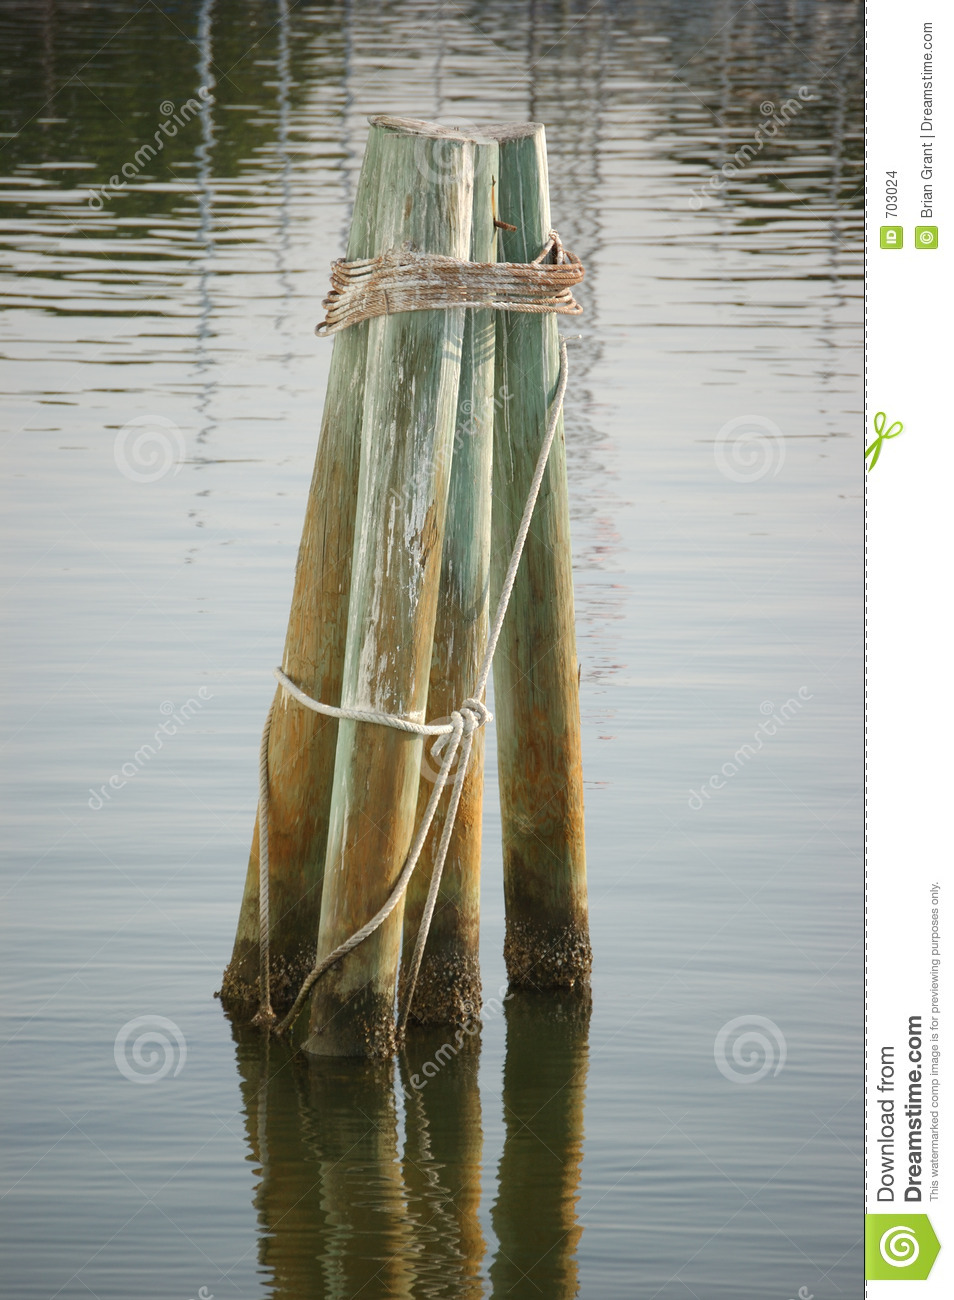 Dolphin pilings stock images image 703024 for Dock pilings cost